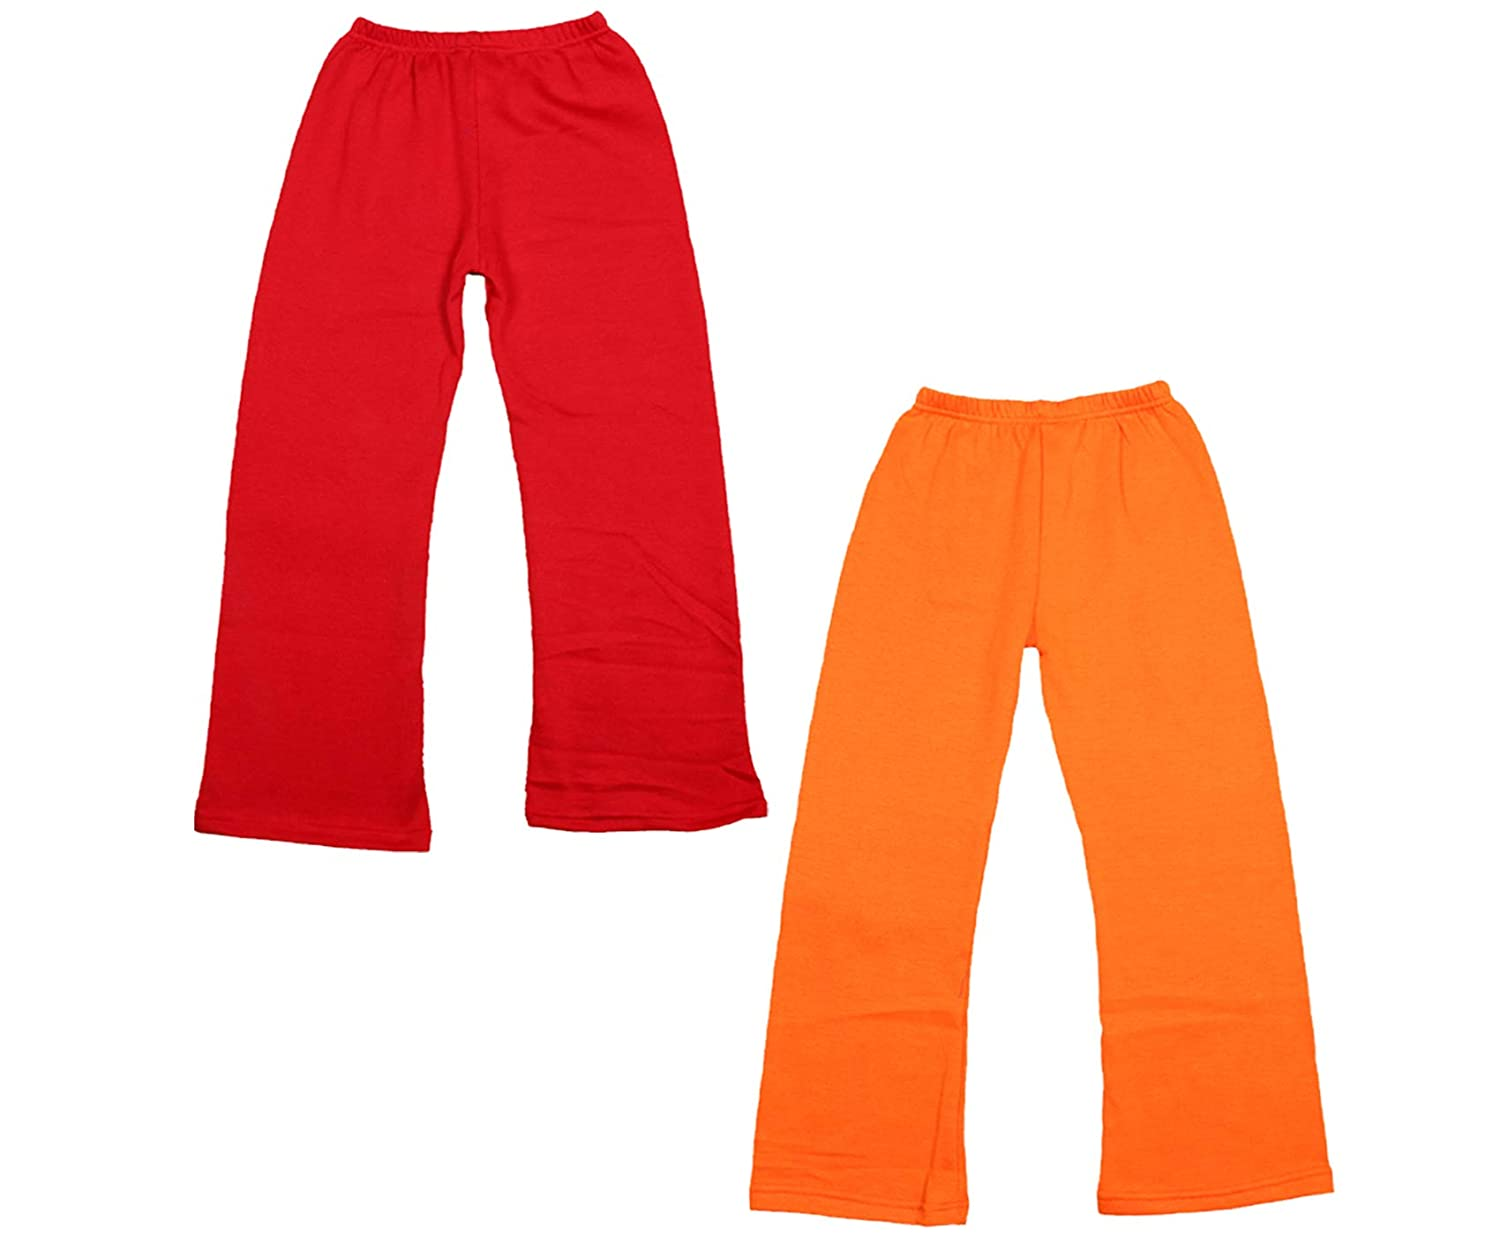 Indistar Girls Warm Woolen Palazzo Pants for Winters Pack of 2